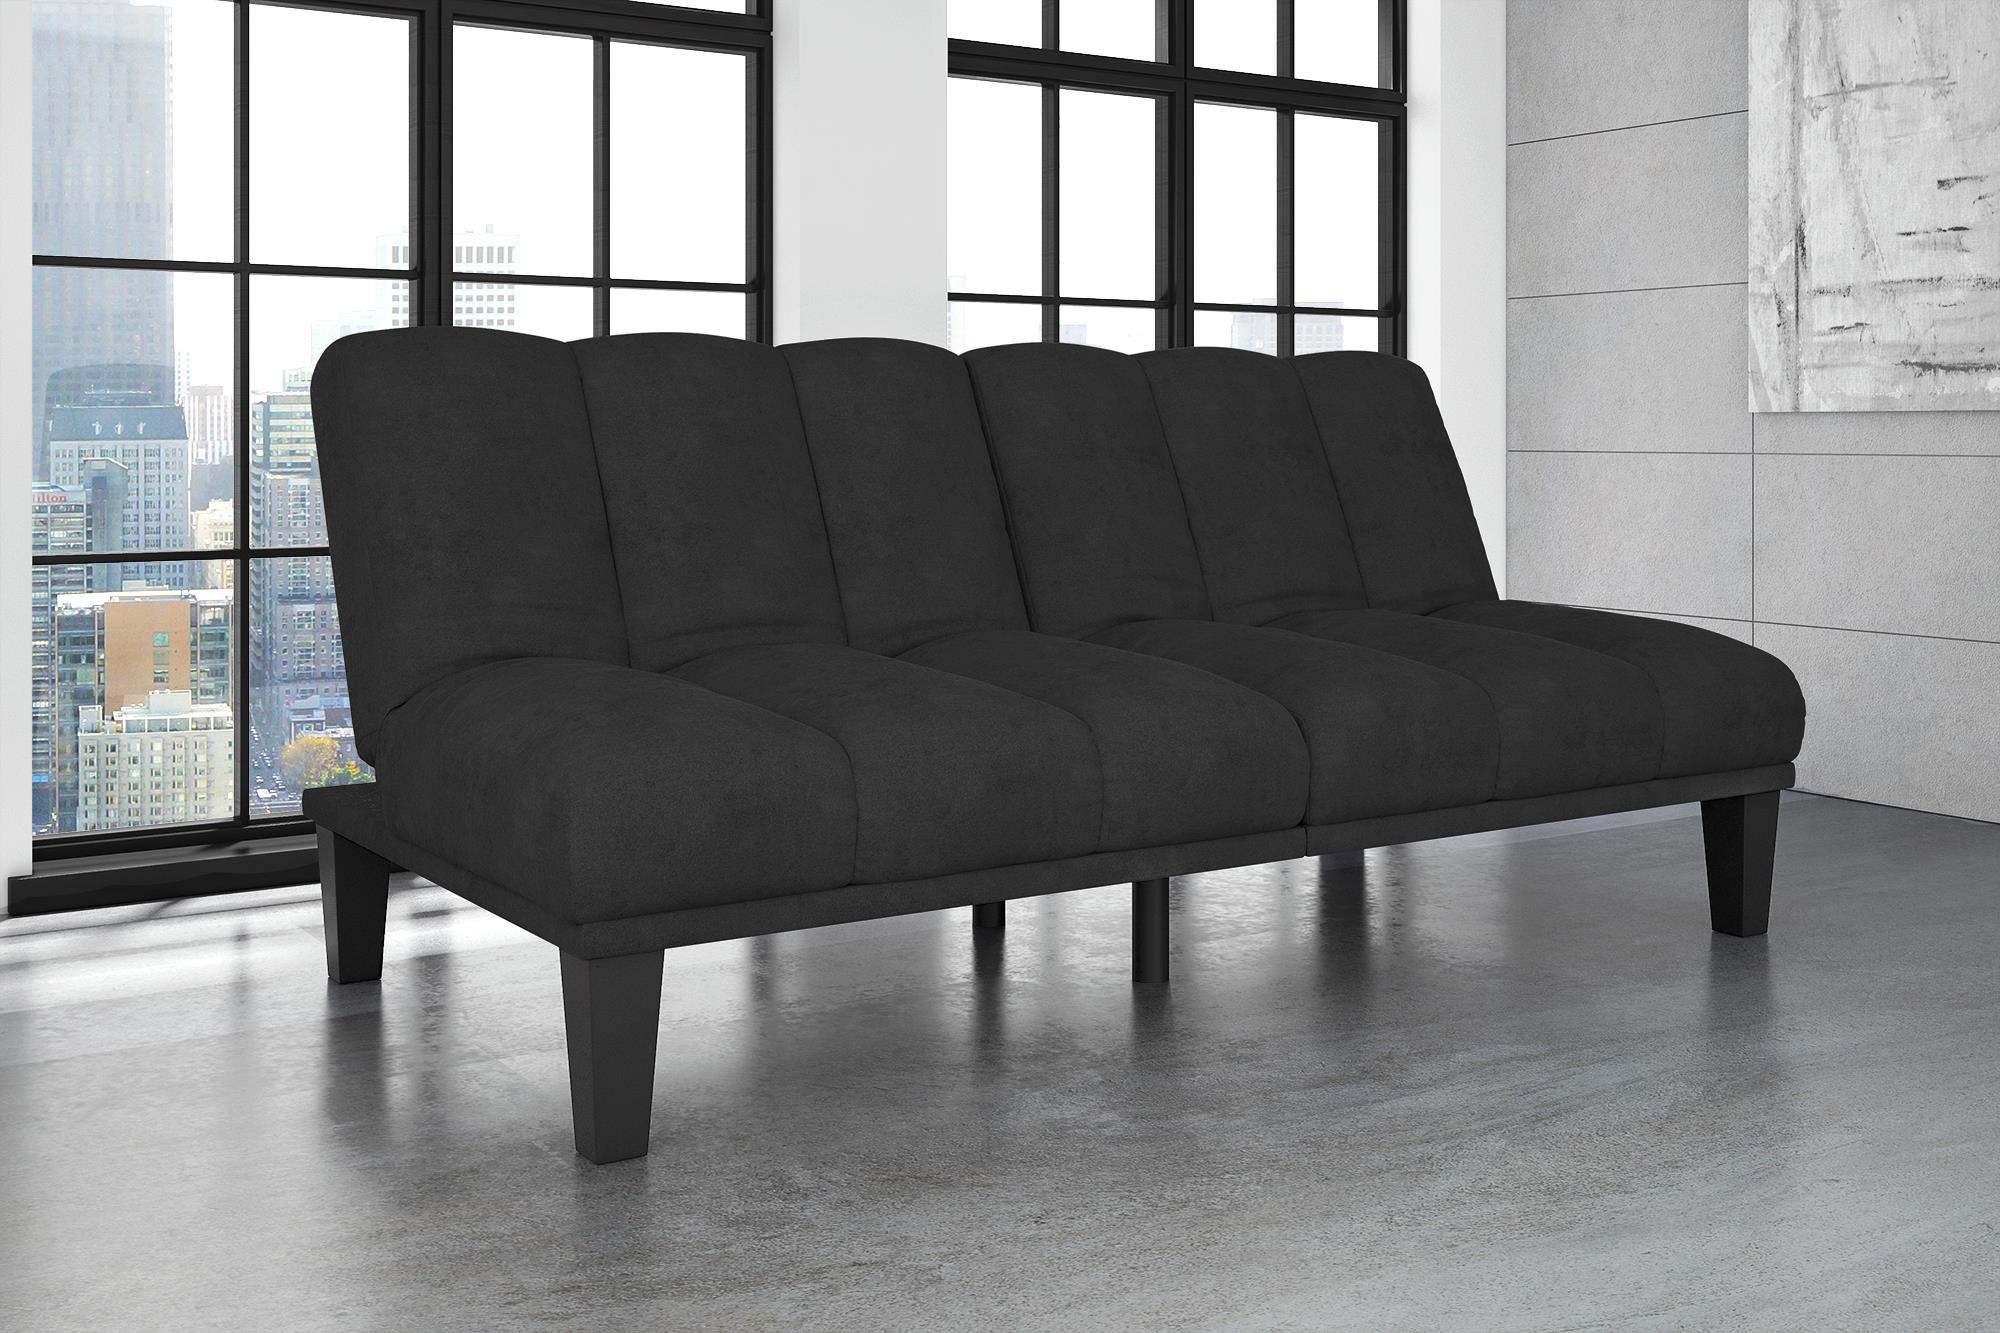 Hamilton Estate Premium Sofa Futon Sleeper, Comfortable Plush Upholstery,  Sturdy Wood Construction, Modern